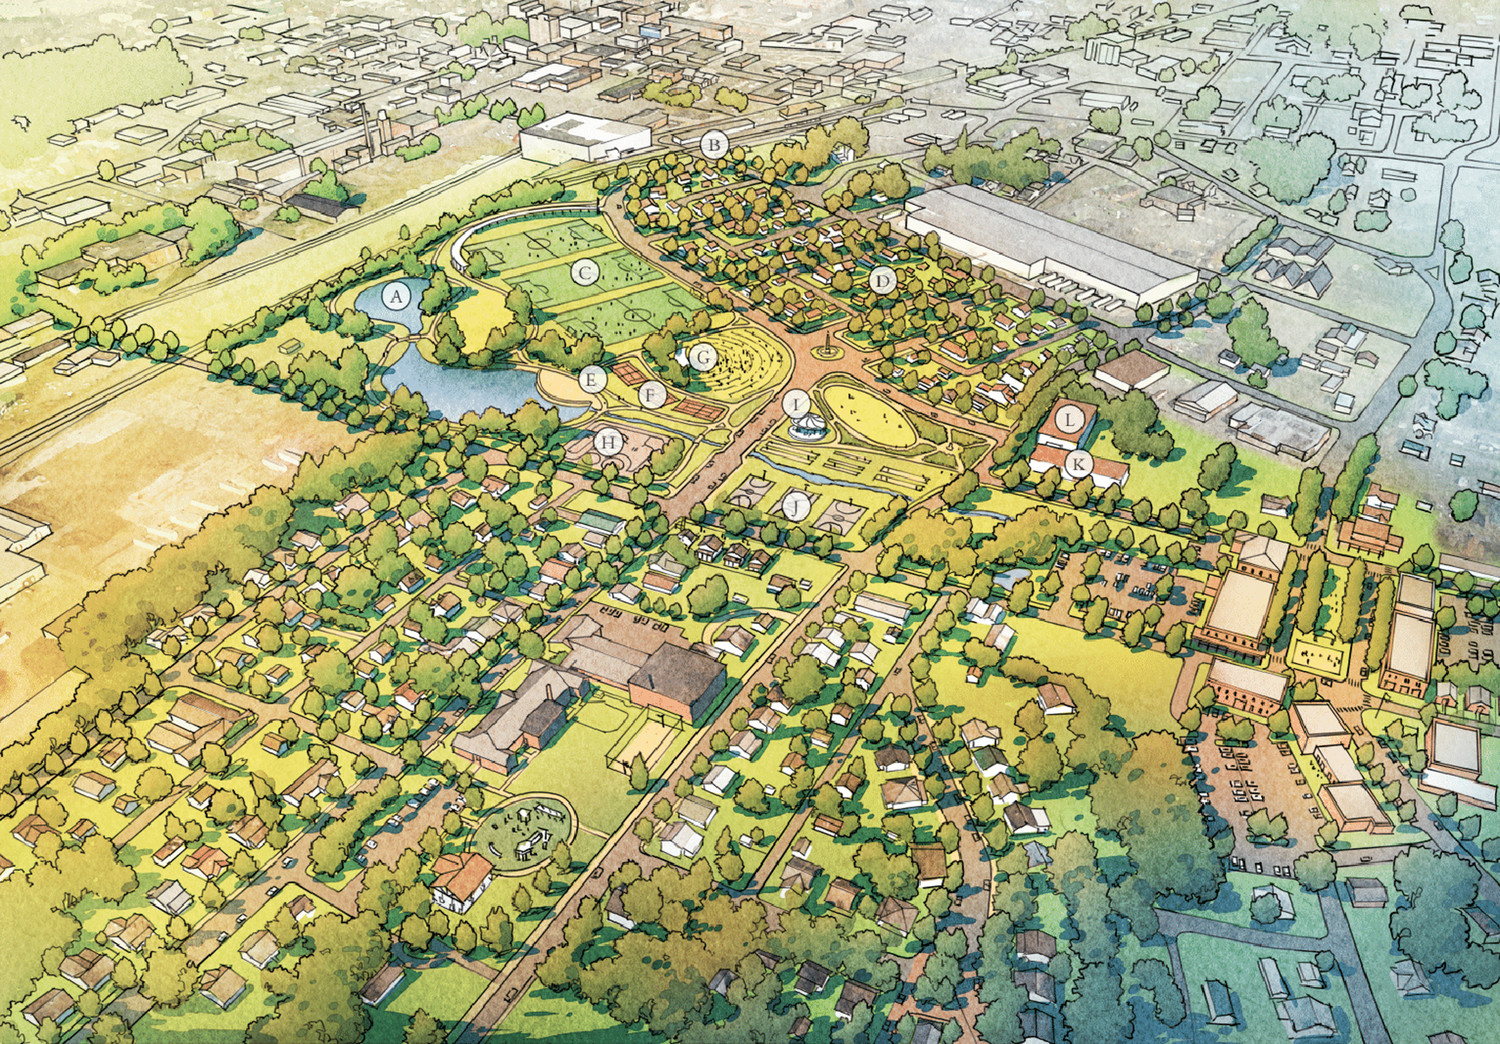 THE GRAPHIC ABOVE shows a conceptual vision for the Blythe-Oldfield community with the addition of the former Whirlpool site. The detailed concept includes a much-enlarged park area, a pond (A), a variety of new homes, a bike trail (E), pickleball courts (F), an amphitheater (G), a skate park (H), a carousel (I), basketball courts (J), a community center (K) and a cannery (L), among a variety of other neighborhood amenities. Organizers admit it's a vision that would require use of the Whirlpool property, and that it could take years. At left, is an aerial view of this same section of the old Whirlpool property on Cleveland's south side.